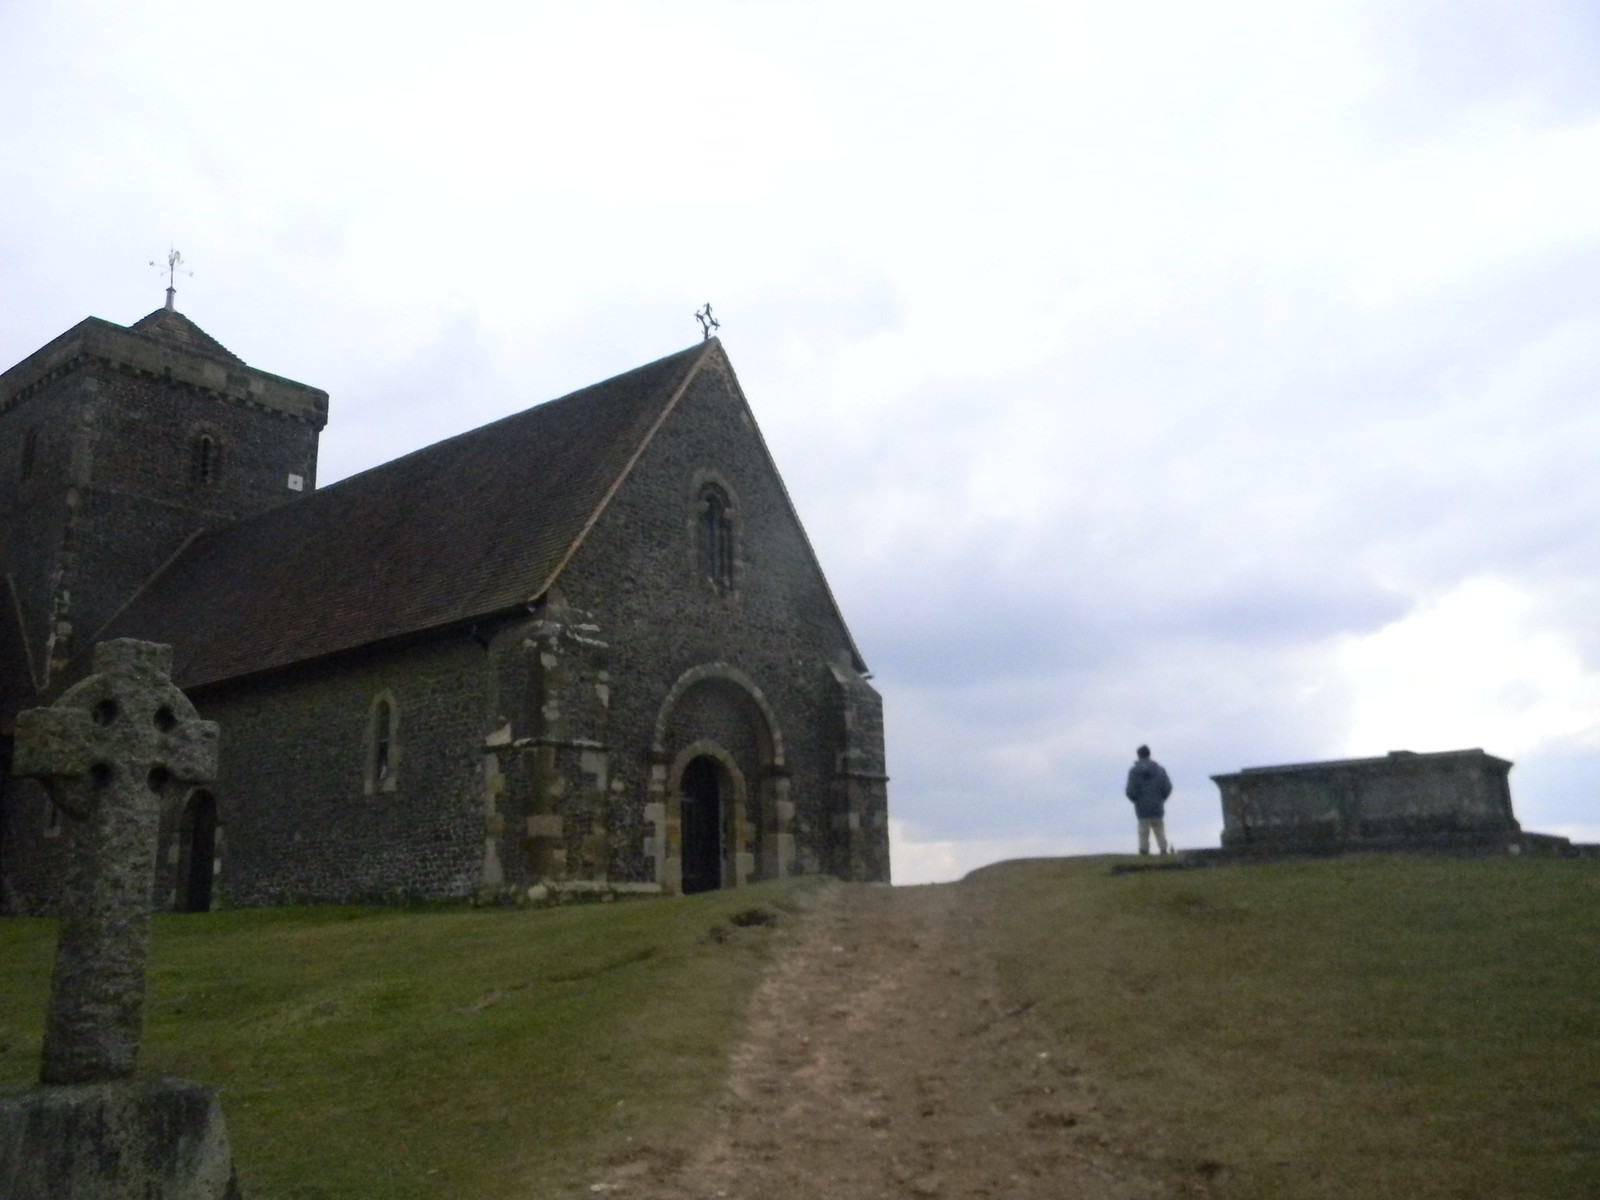 St Martha's on the Mount Guildford to Gomshall